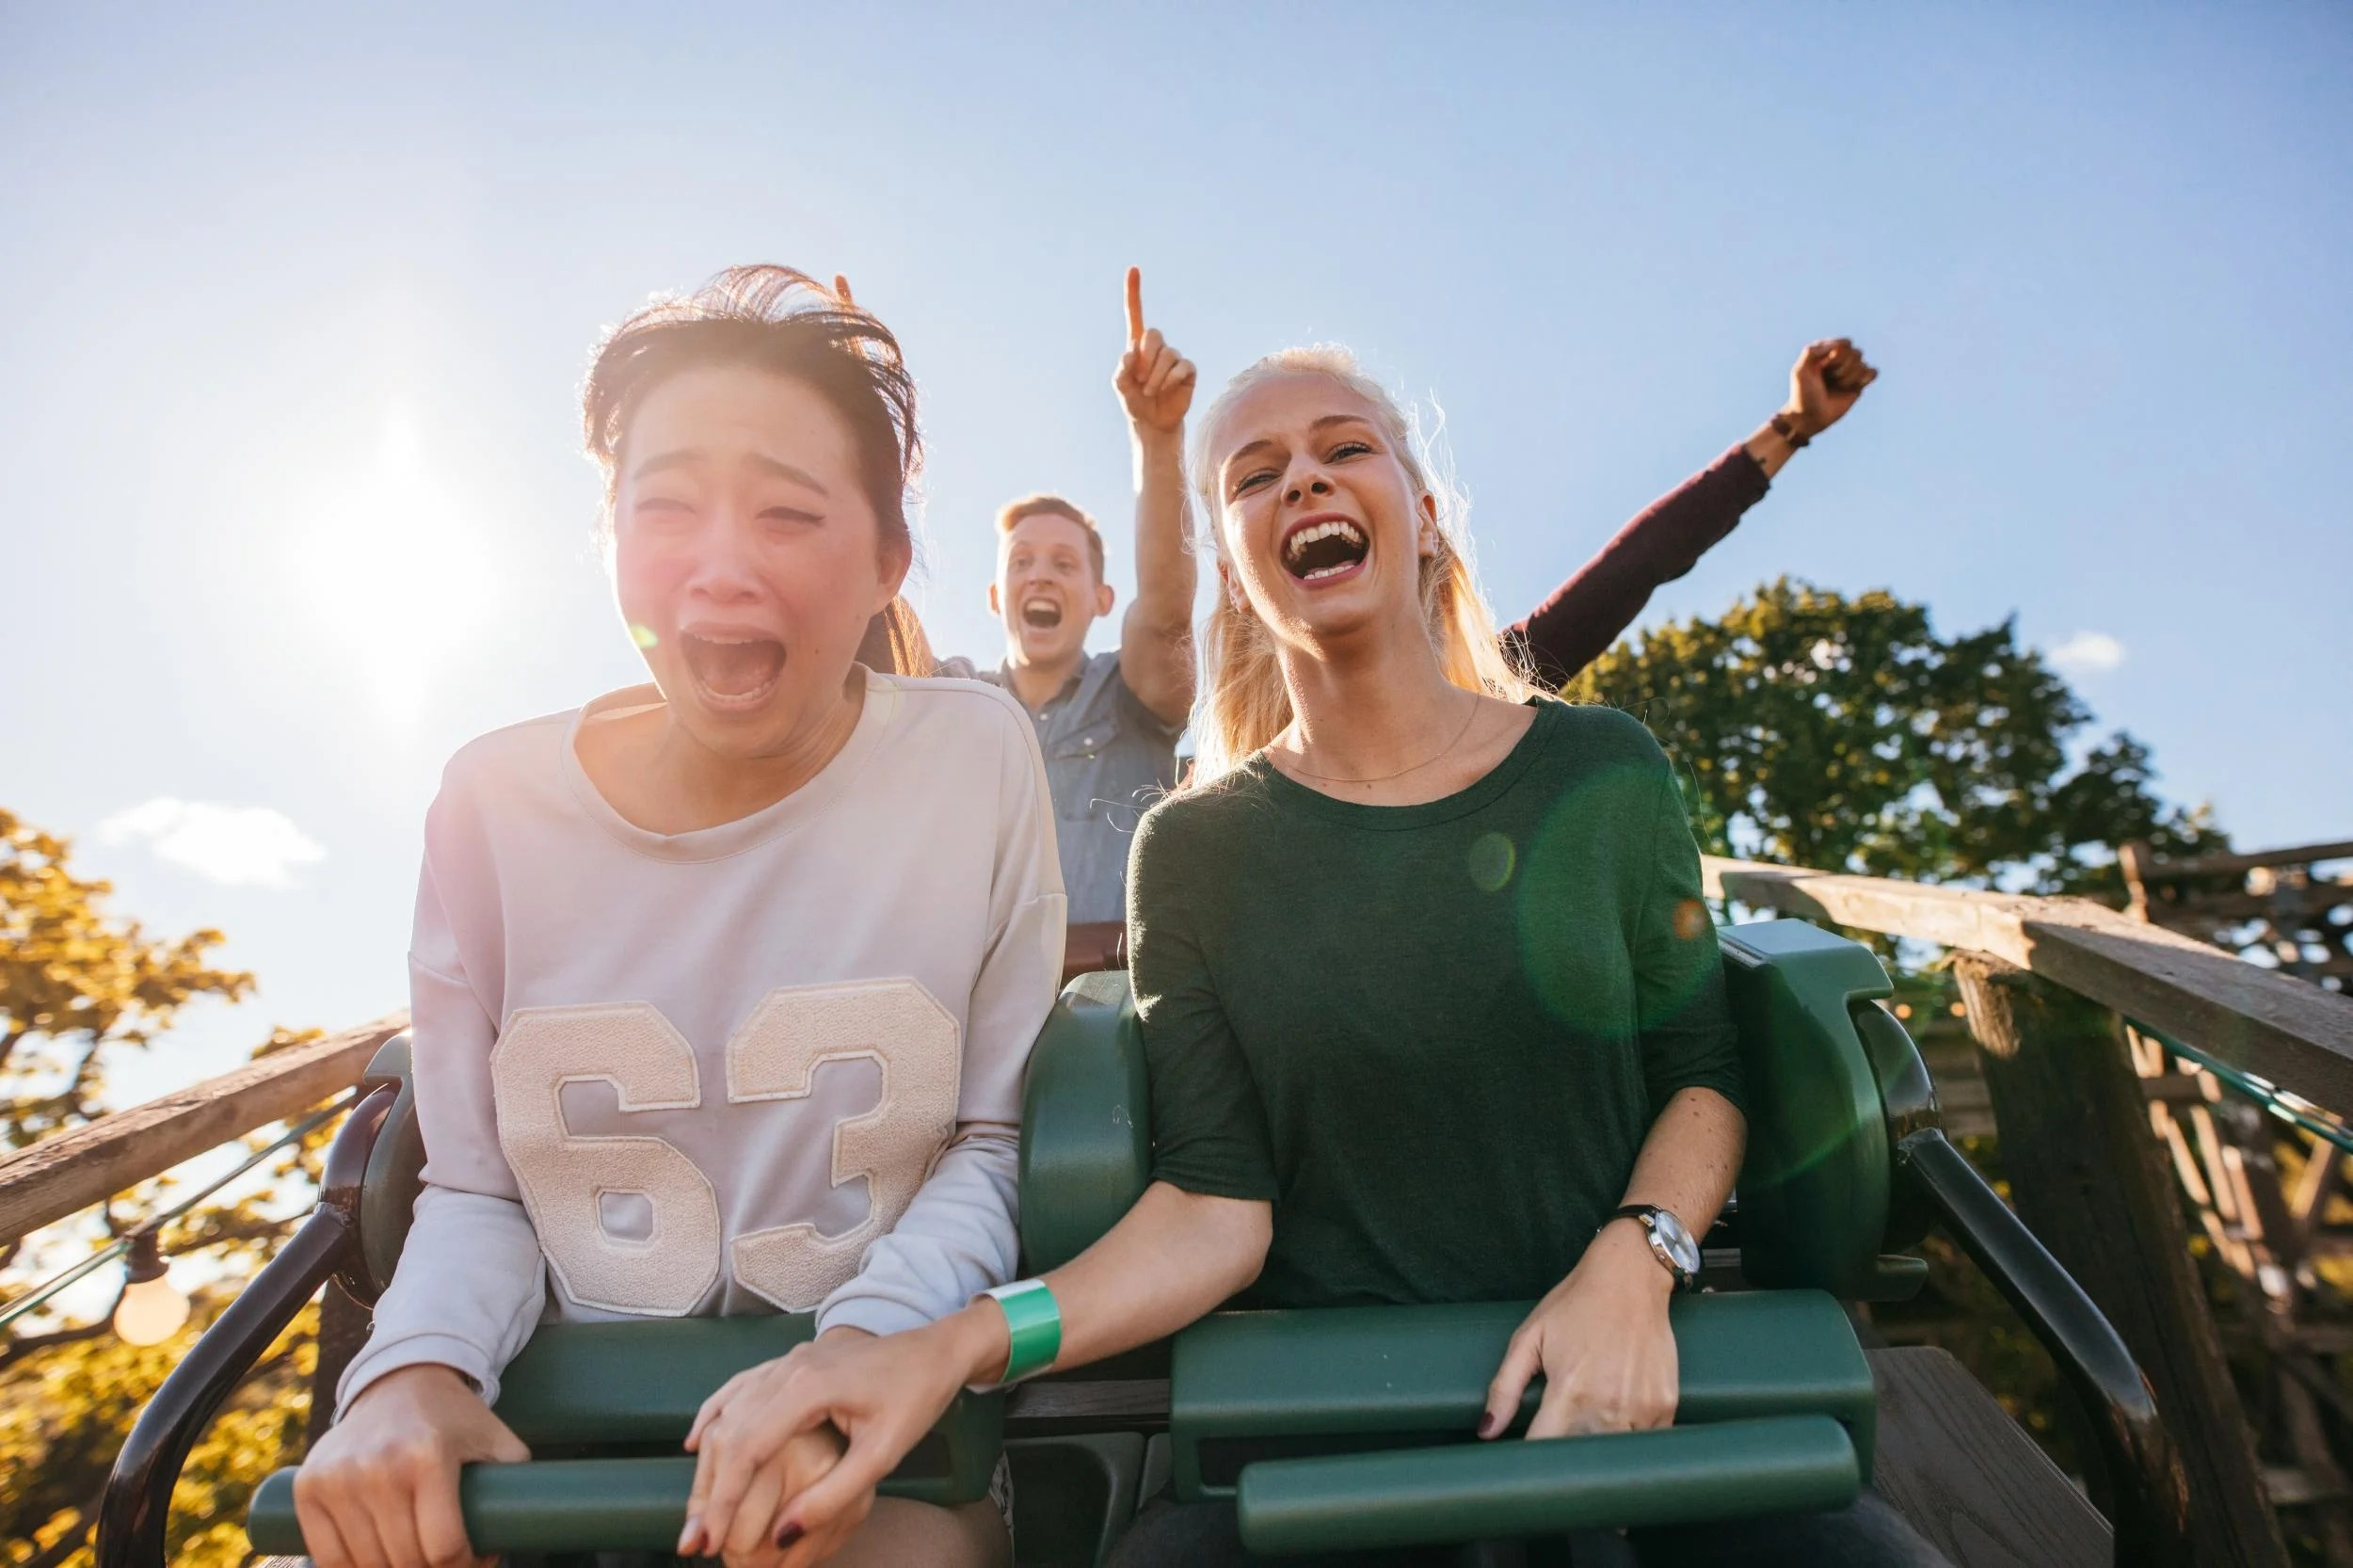 The 10 Best Amusement Parks In The Uk Revealed